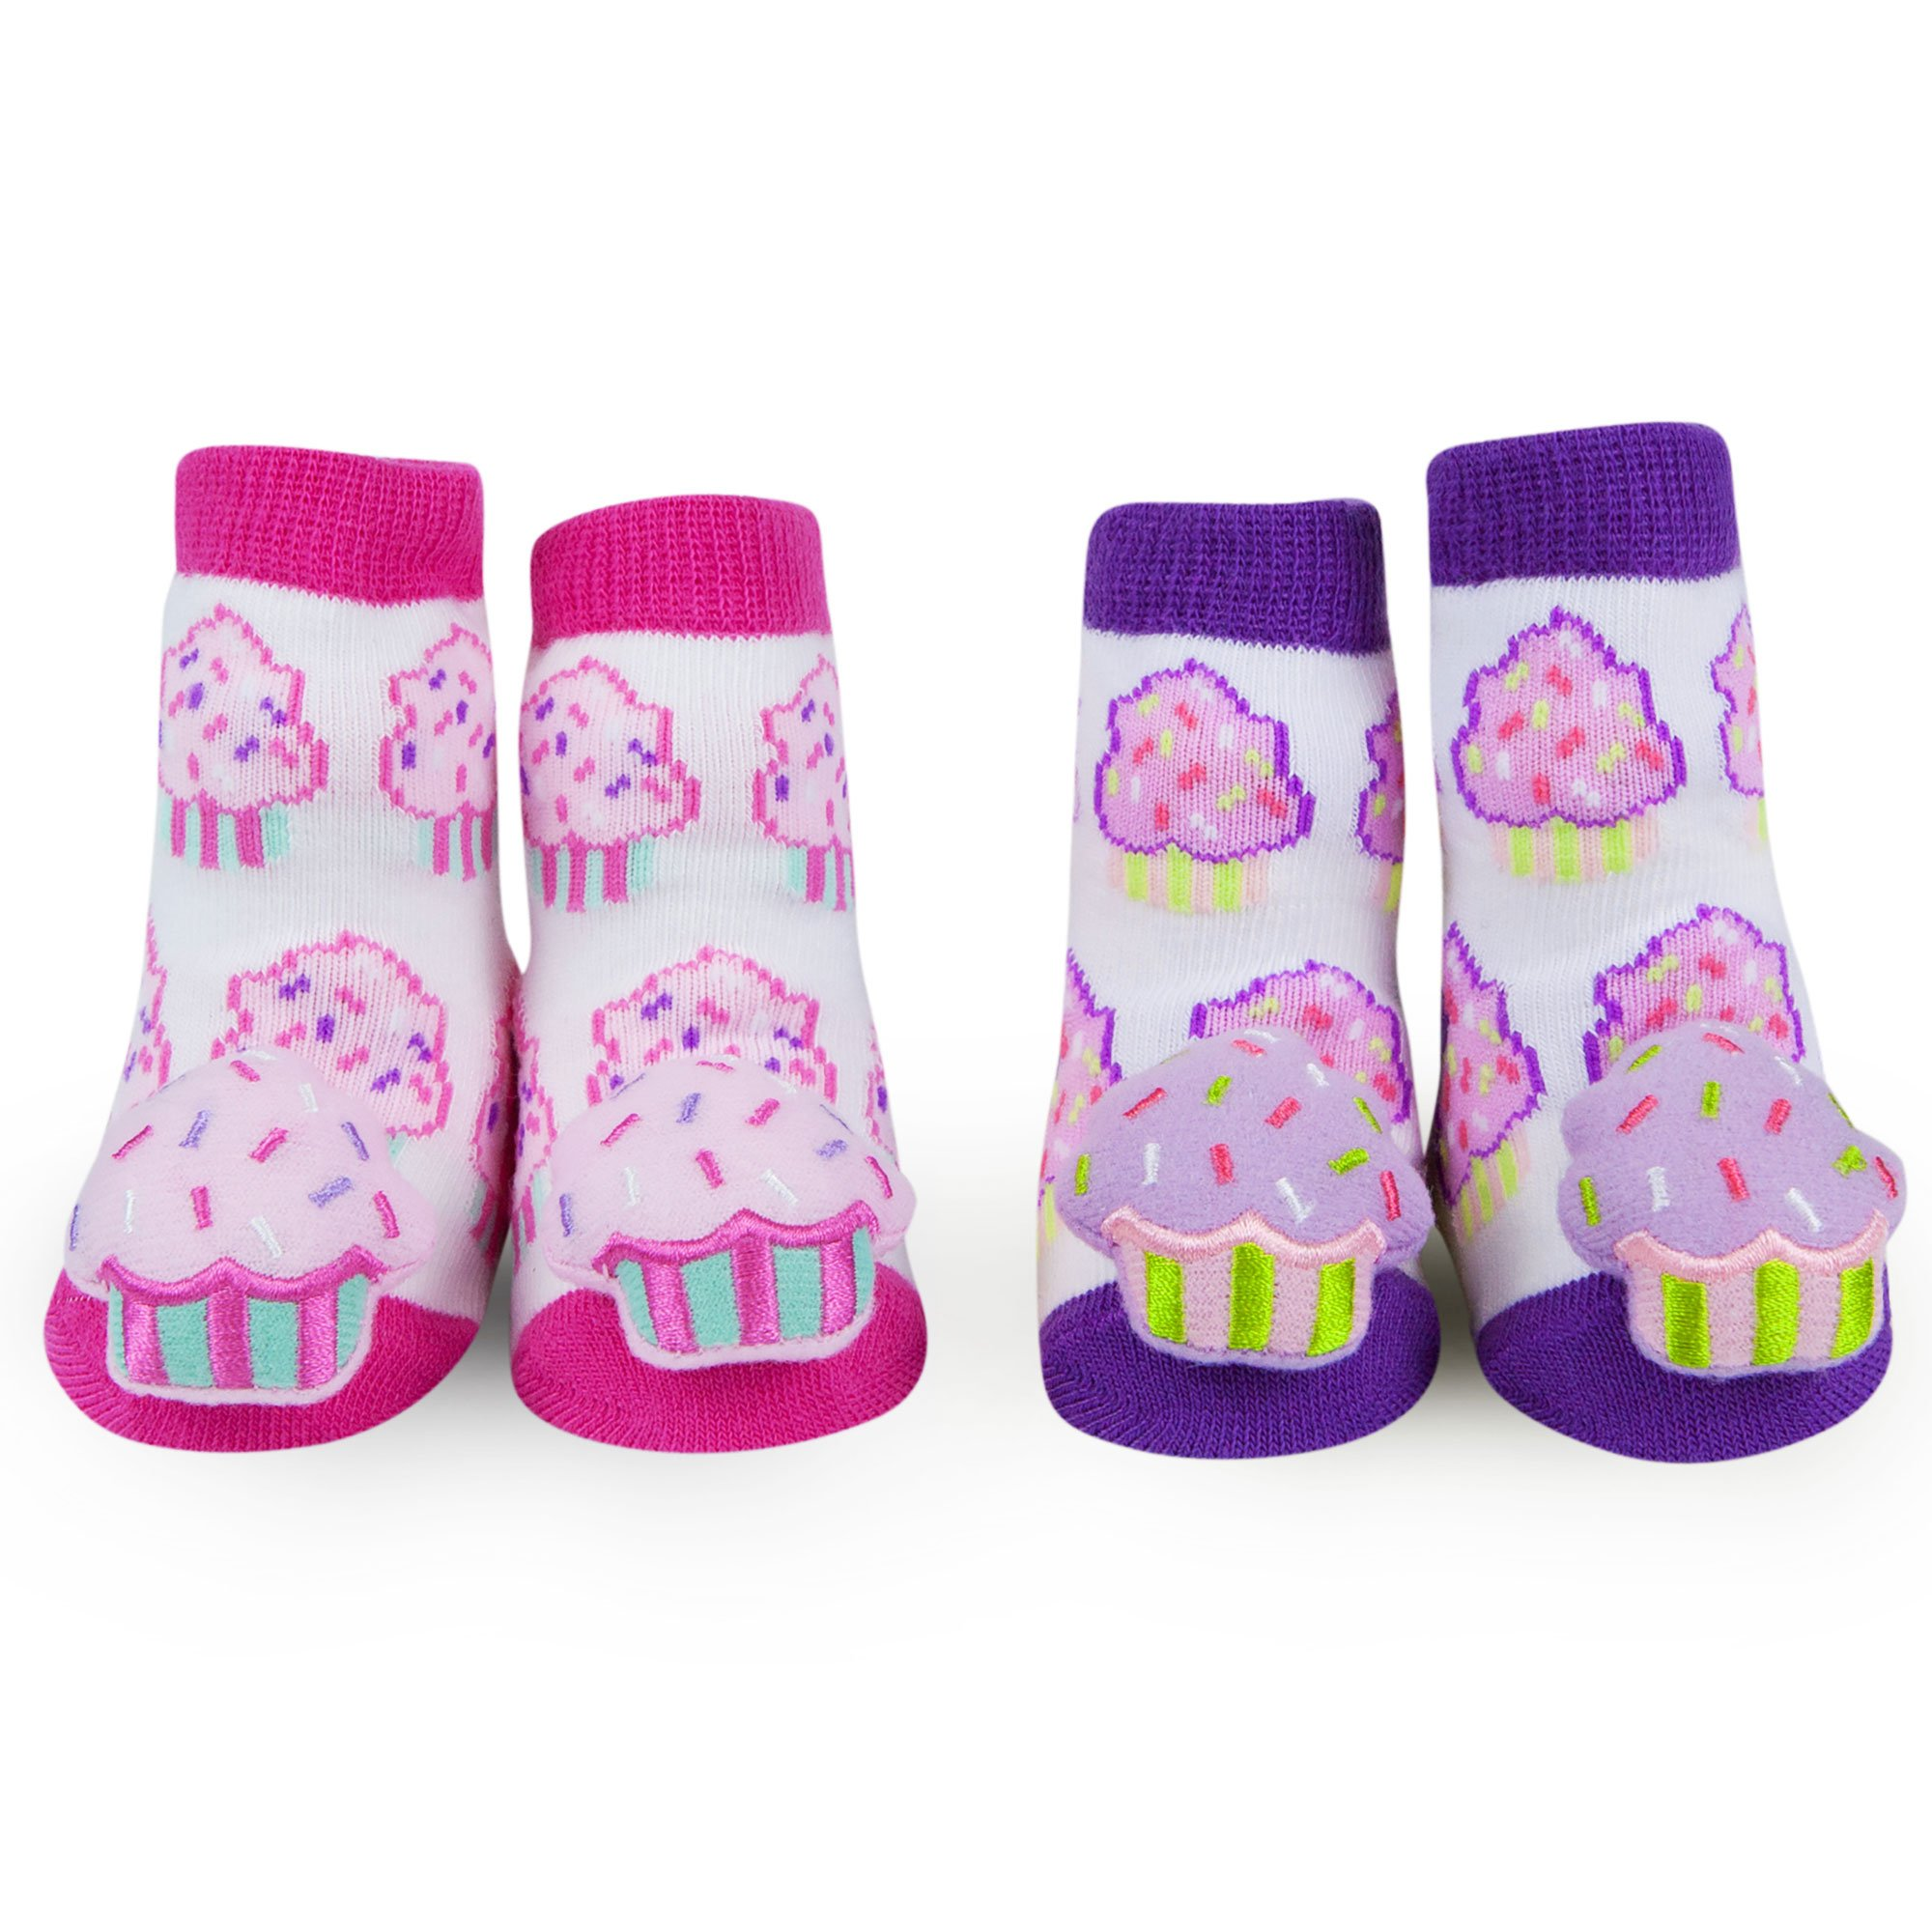 Waddle Baby Rattle Sprinkle Cupcake Newborn Socks for Girls Pink Purple (2 Pair)